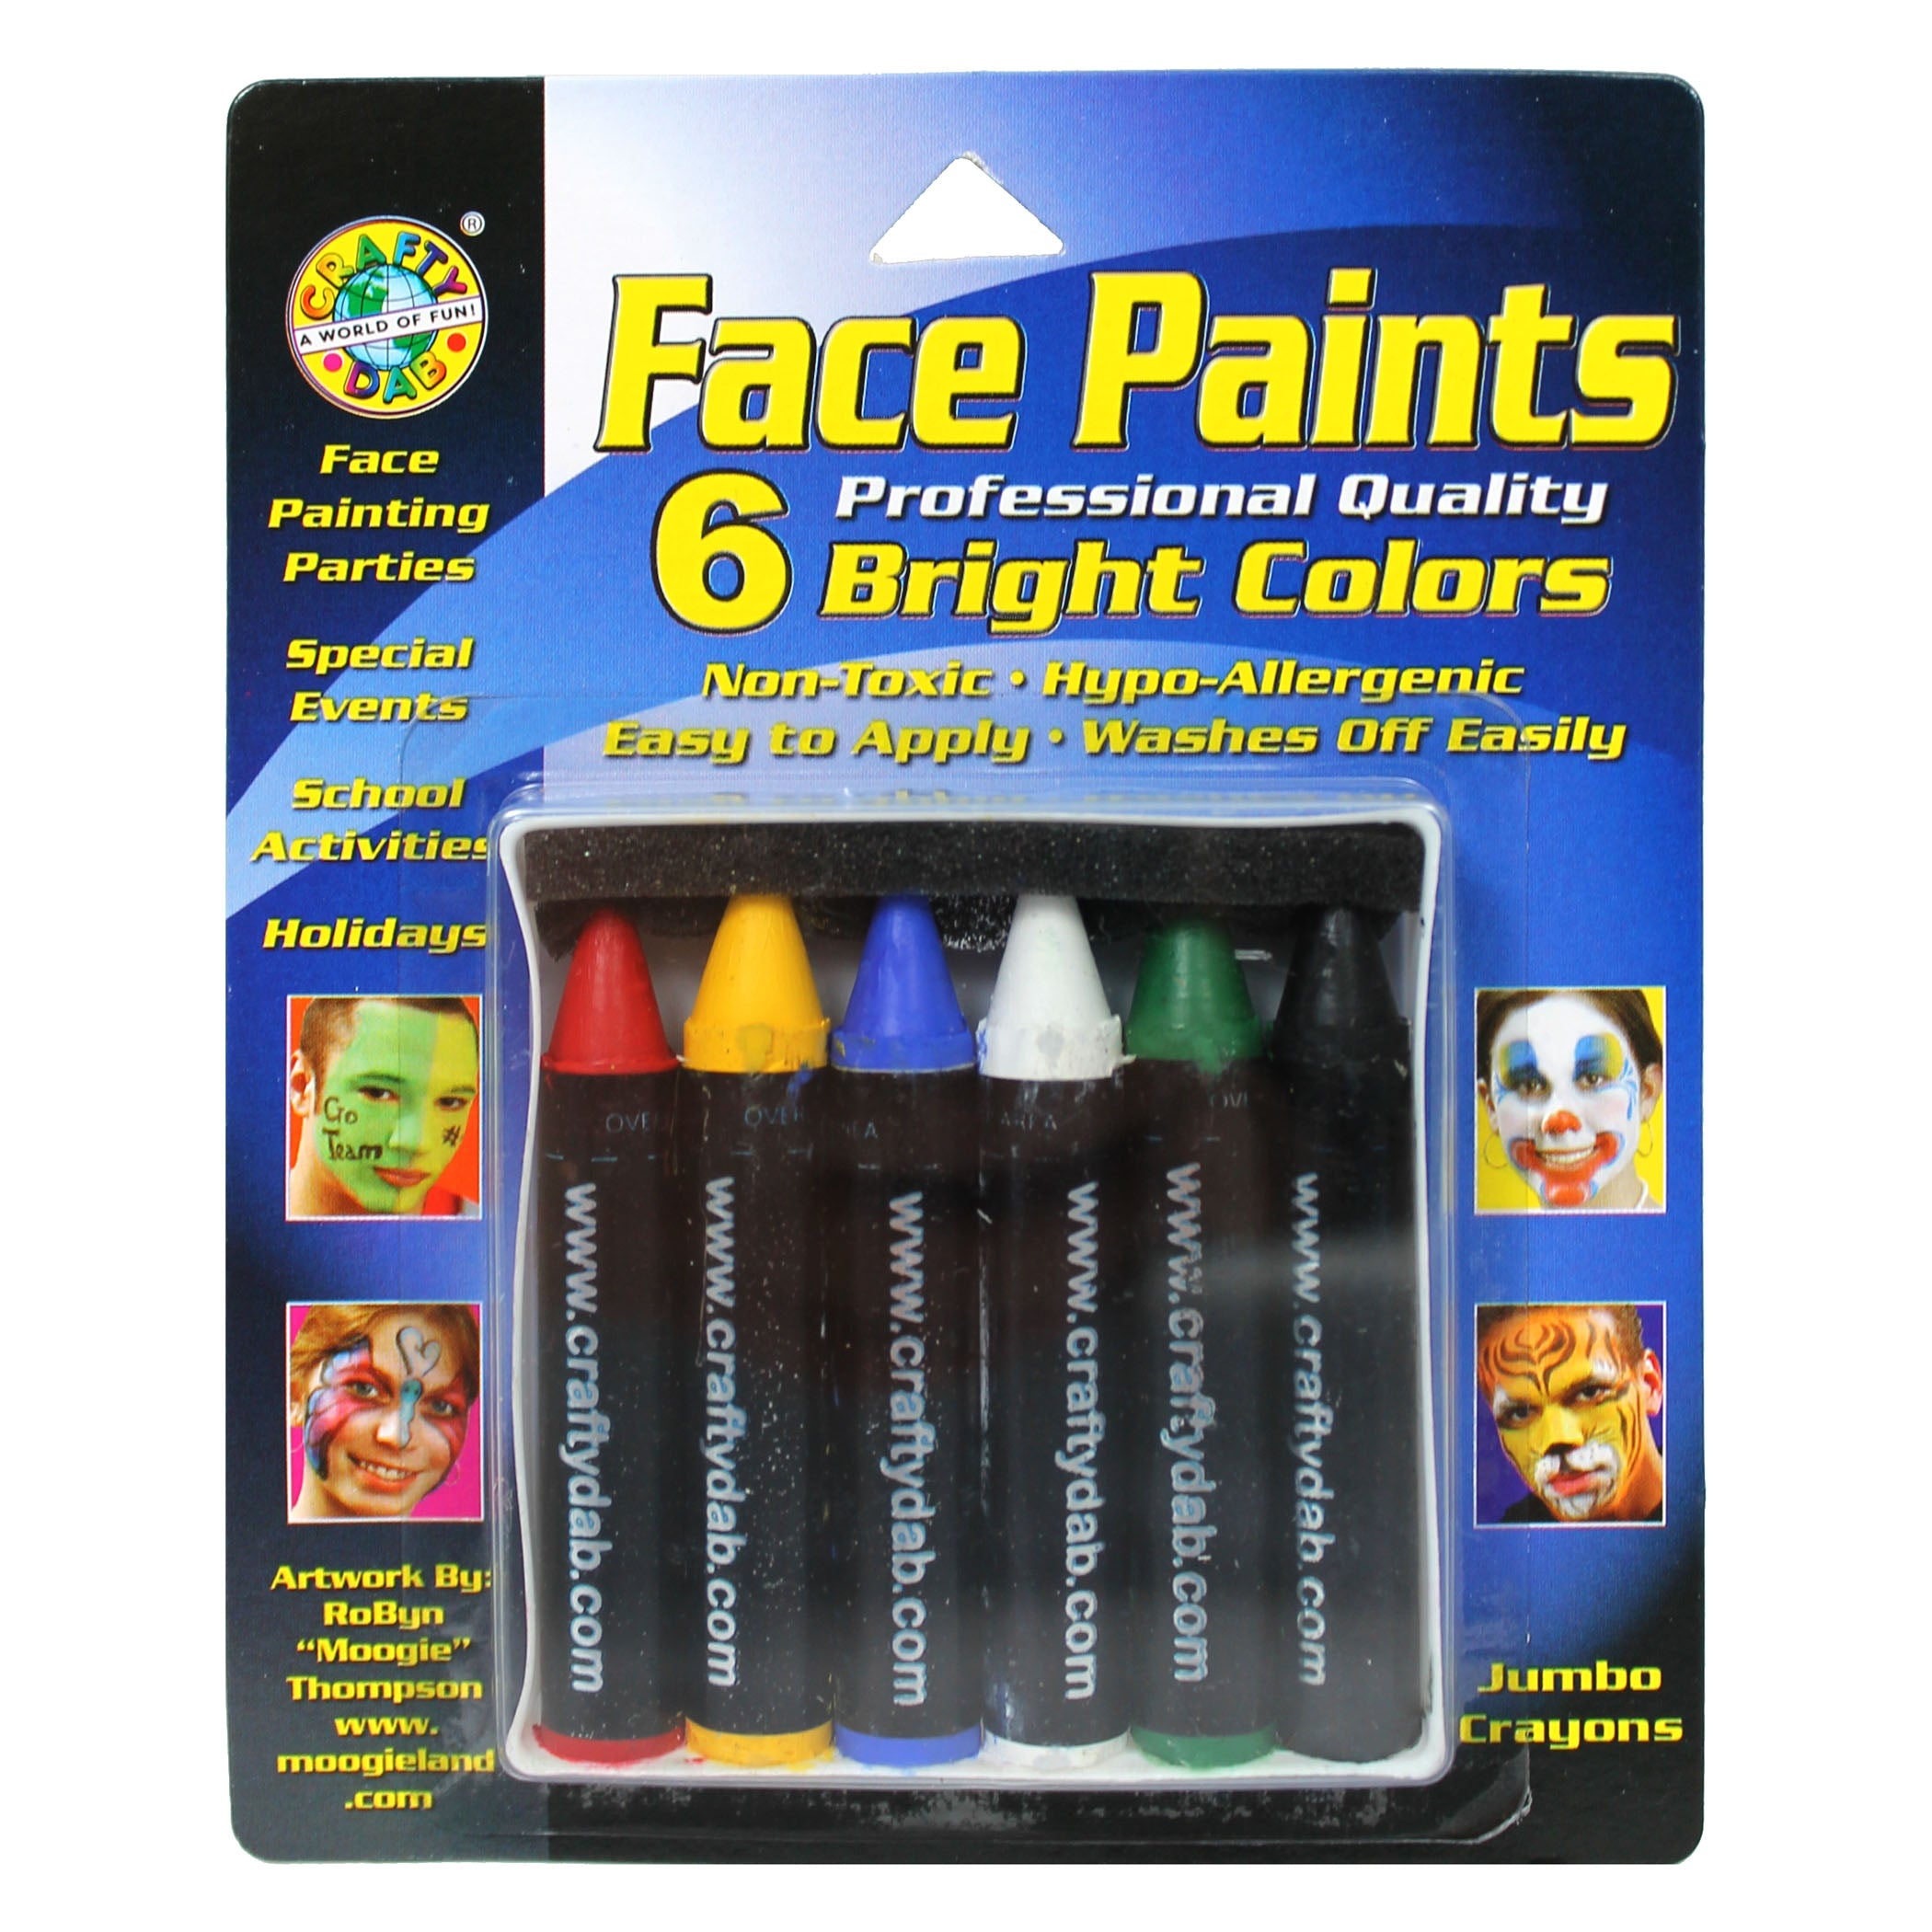 Crafty Dab Jumbo Crayon Face 6 Pk Bright Paints - Kiddren